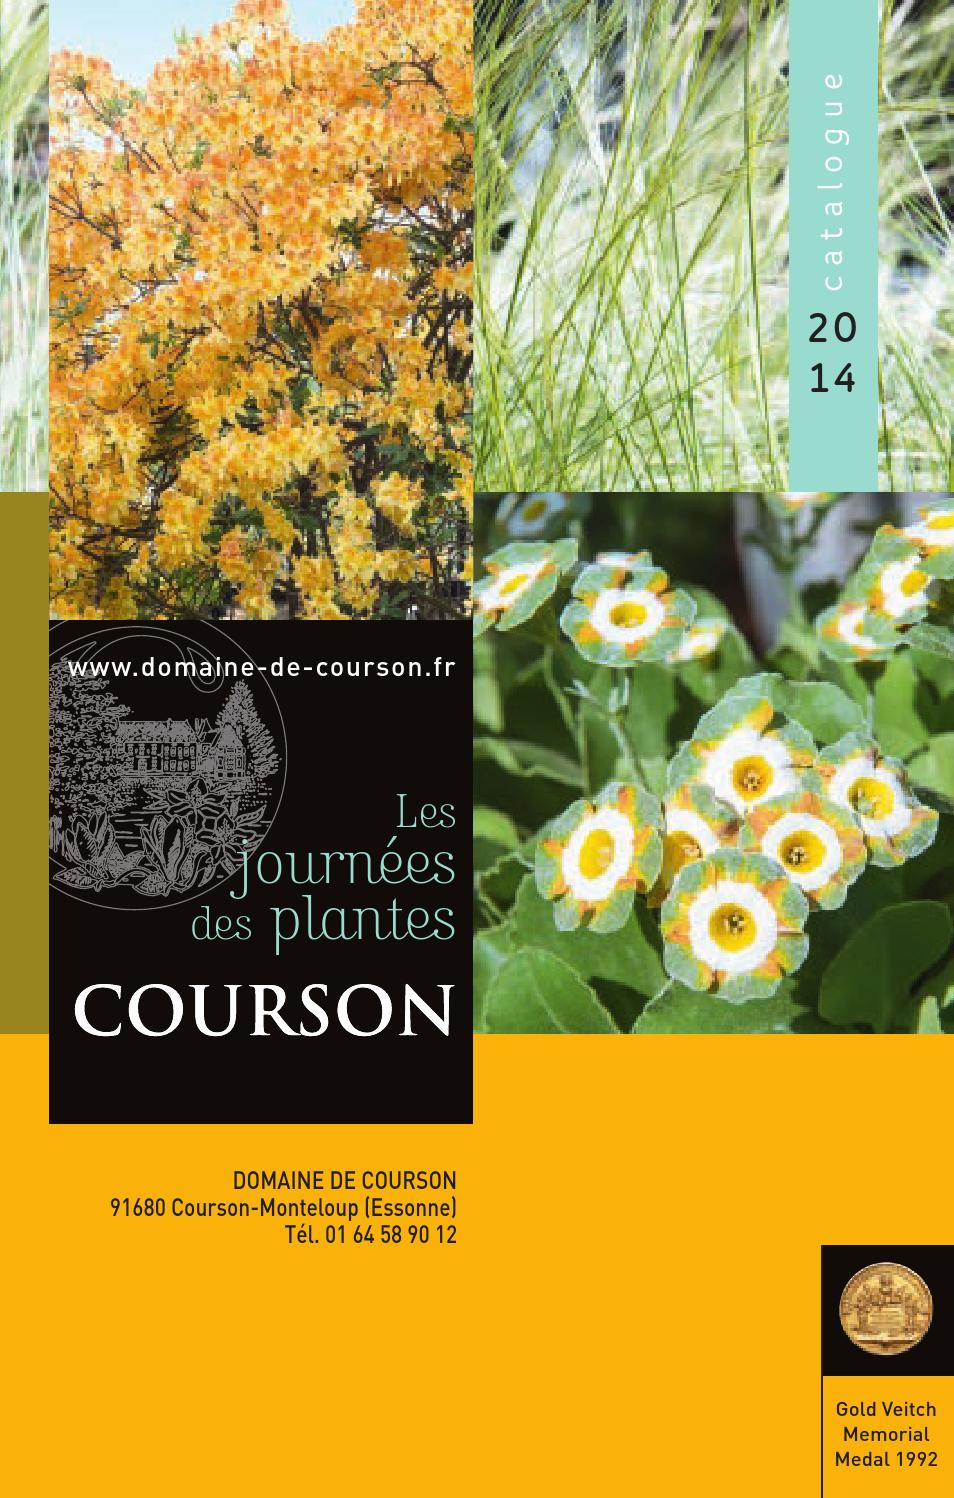 Plante Retombante Pour Muret catalogue courson 2014 sitedomaine de courson - issuu